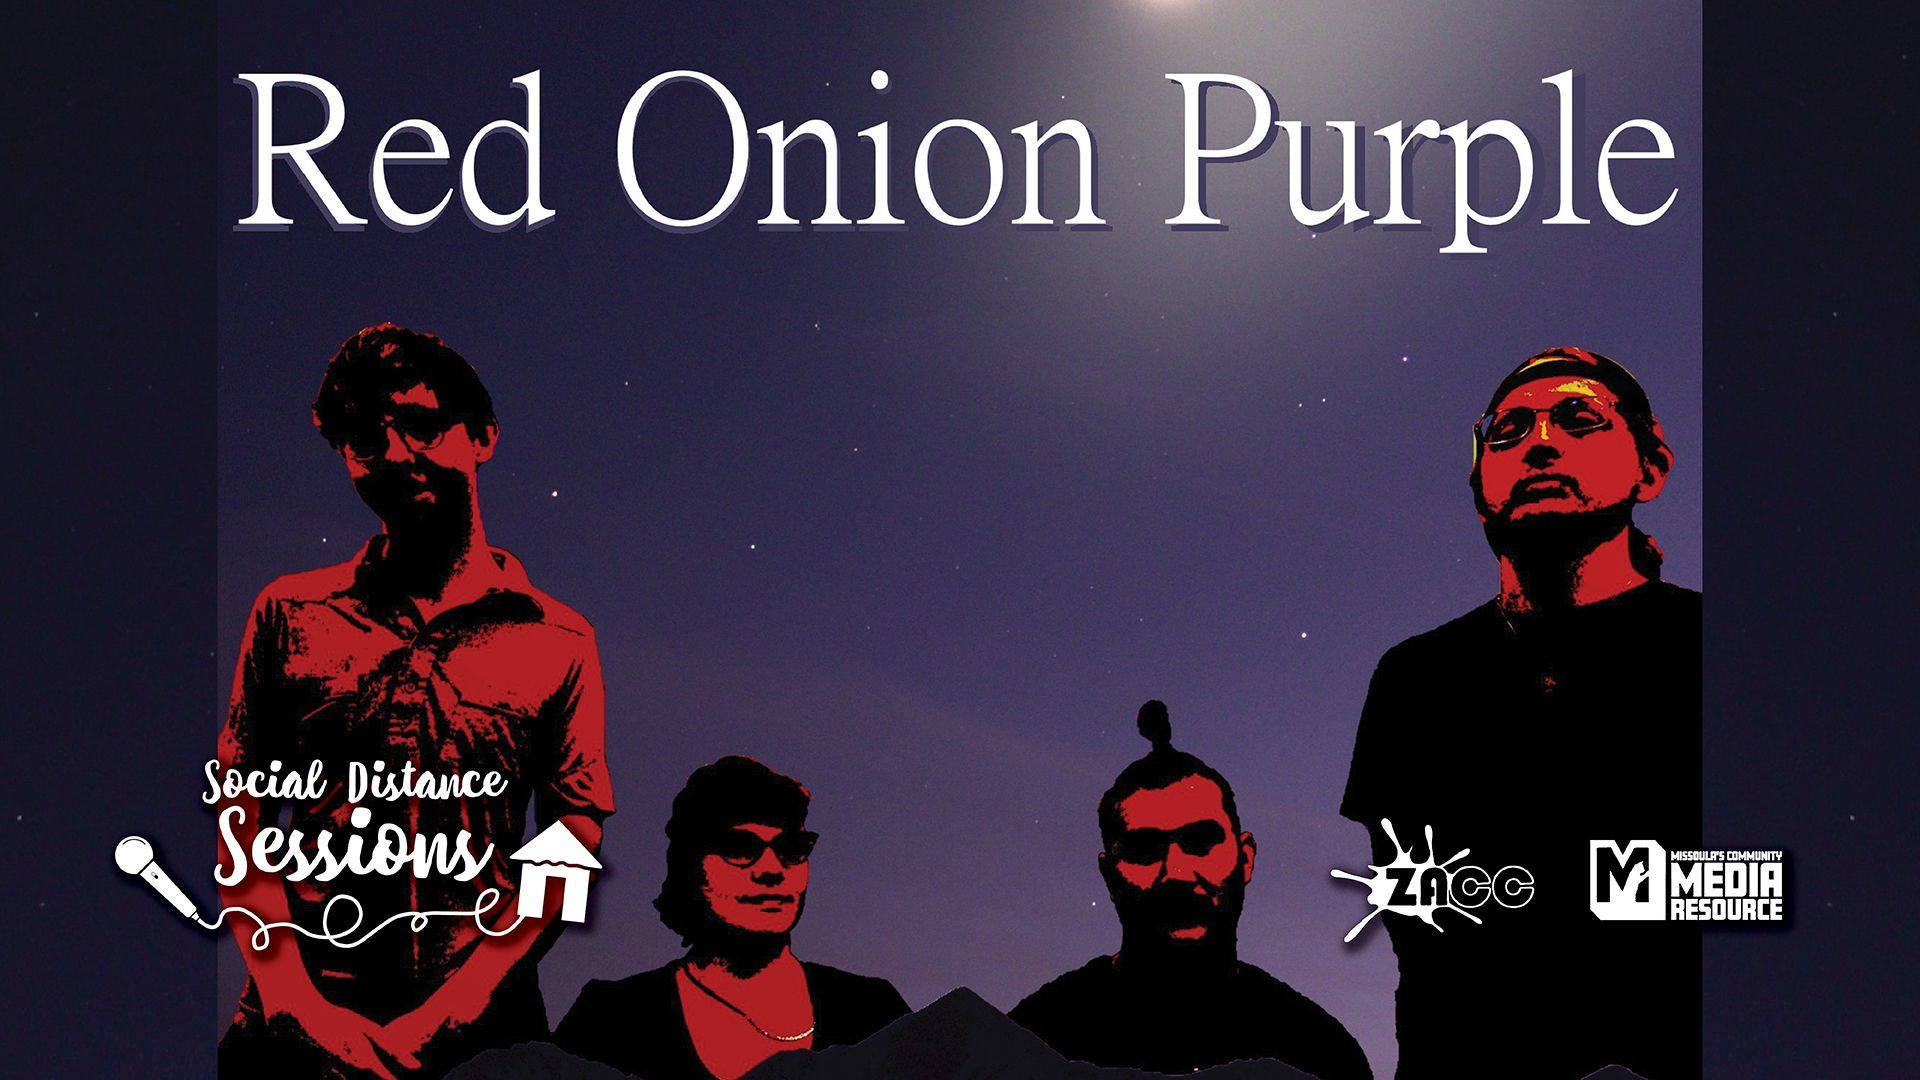 Social Distance Sessions: Red Onion Purple